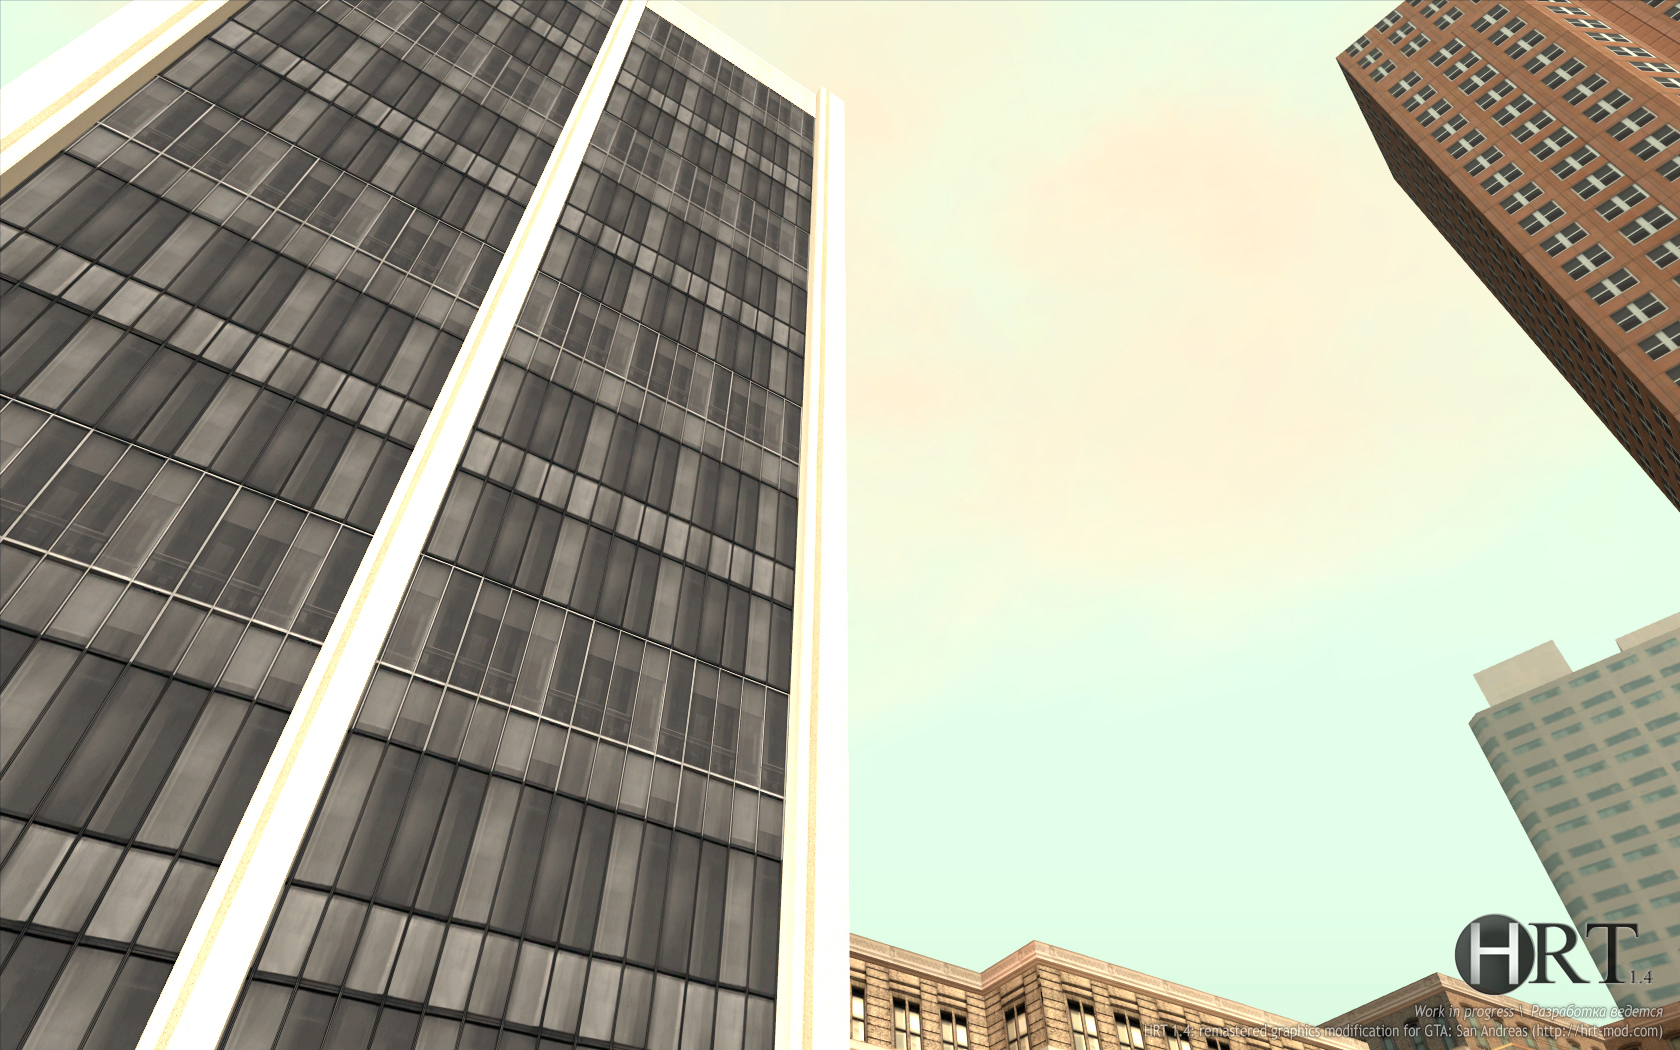 hrt 1 4 image - hrt 1 4  u2014 hd remastered graphics mod for grand theft auto  san andreas